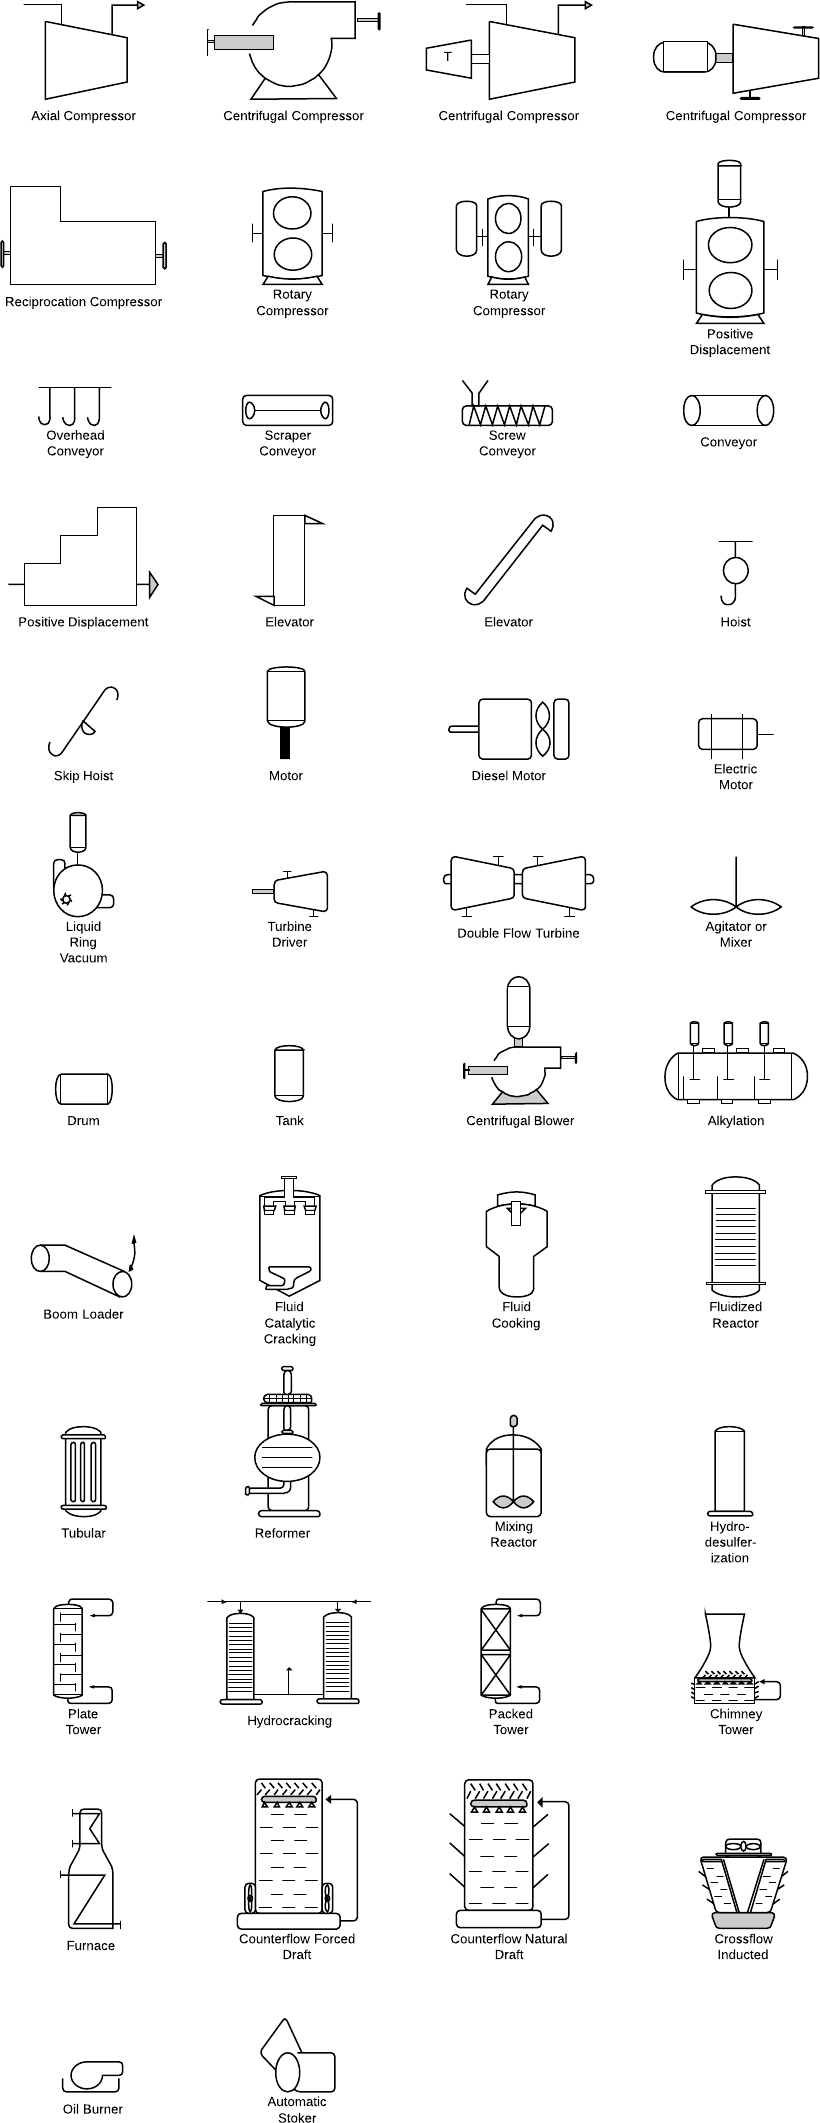 Pid Instrument Symbols Legend Pictures to Pin on Pinterest